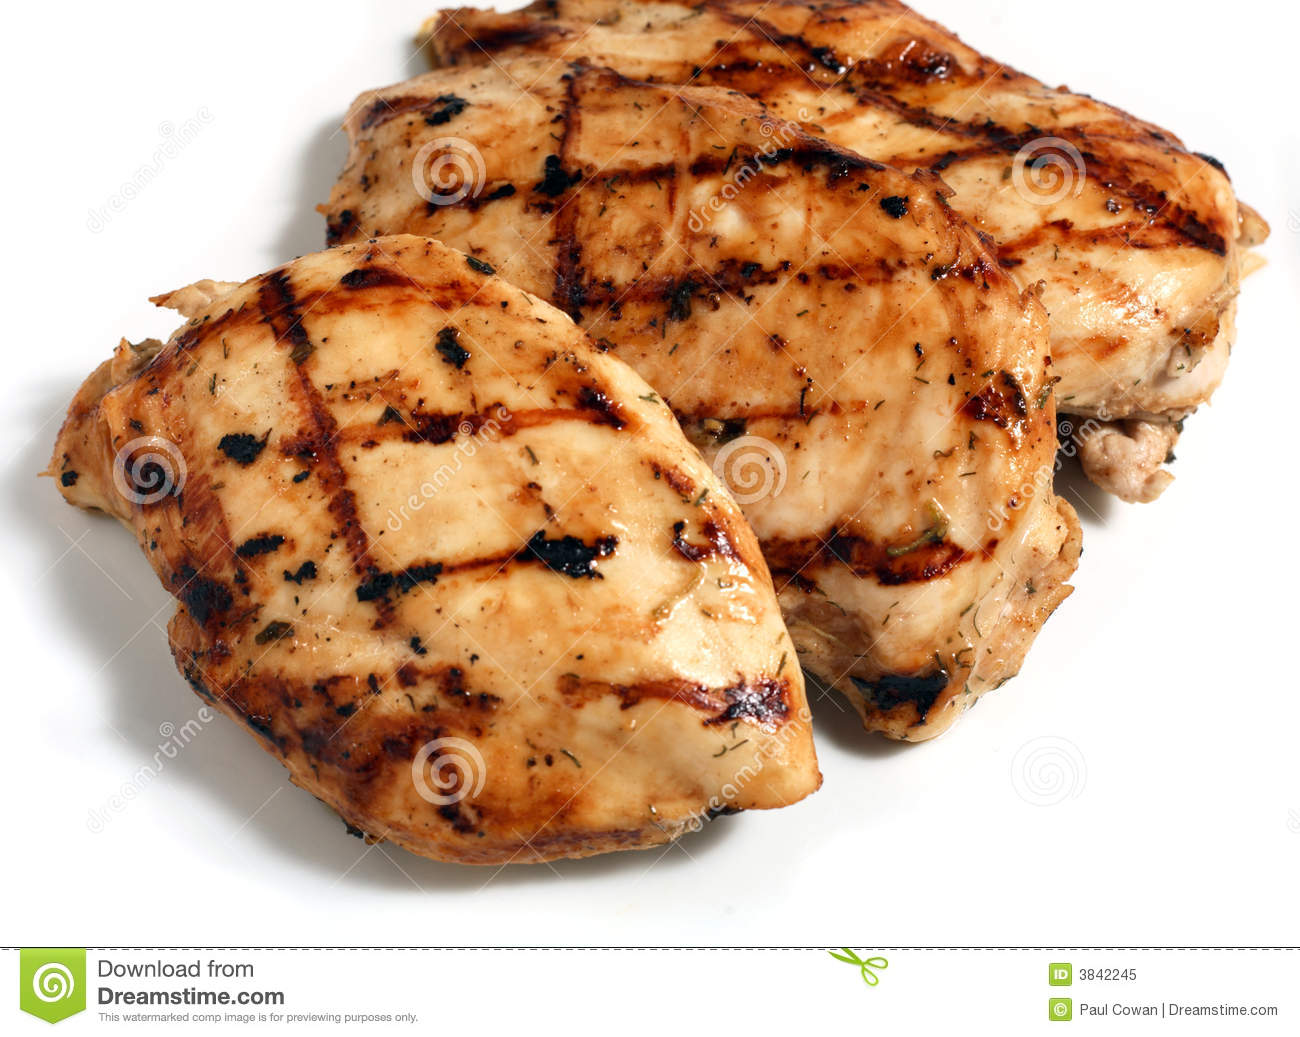 Grilled Chicken Meat Steaks Royalty Free Stock Photo   Image  3842245